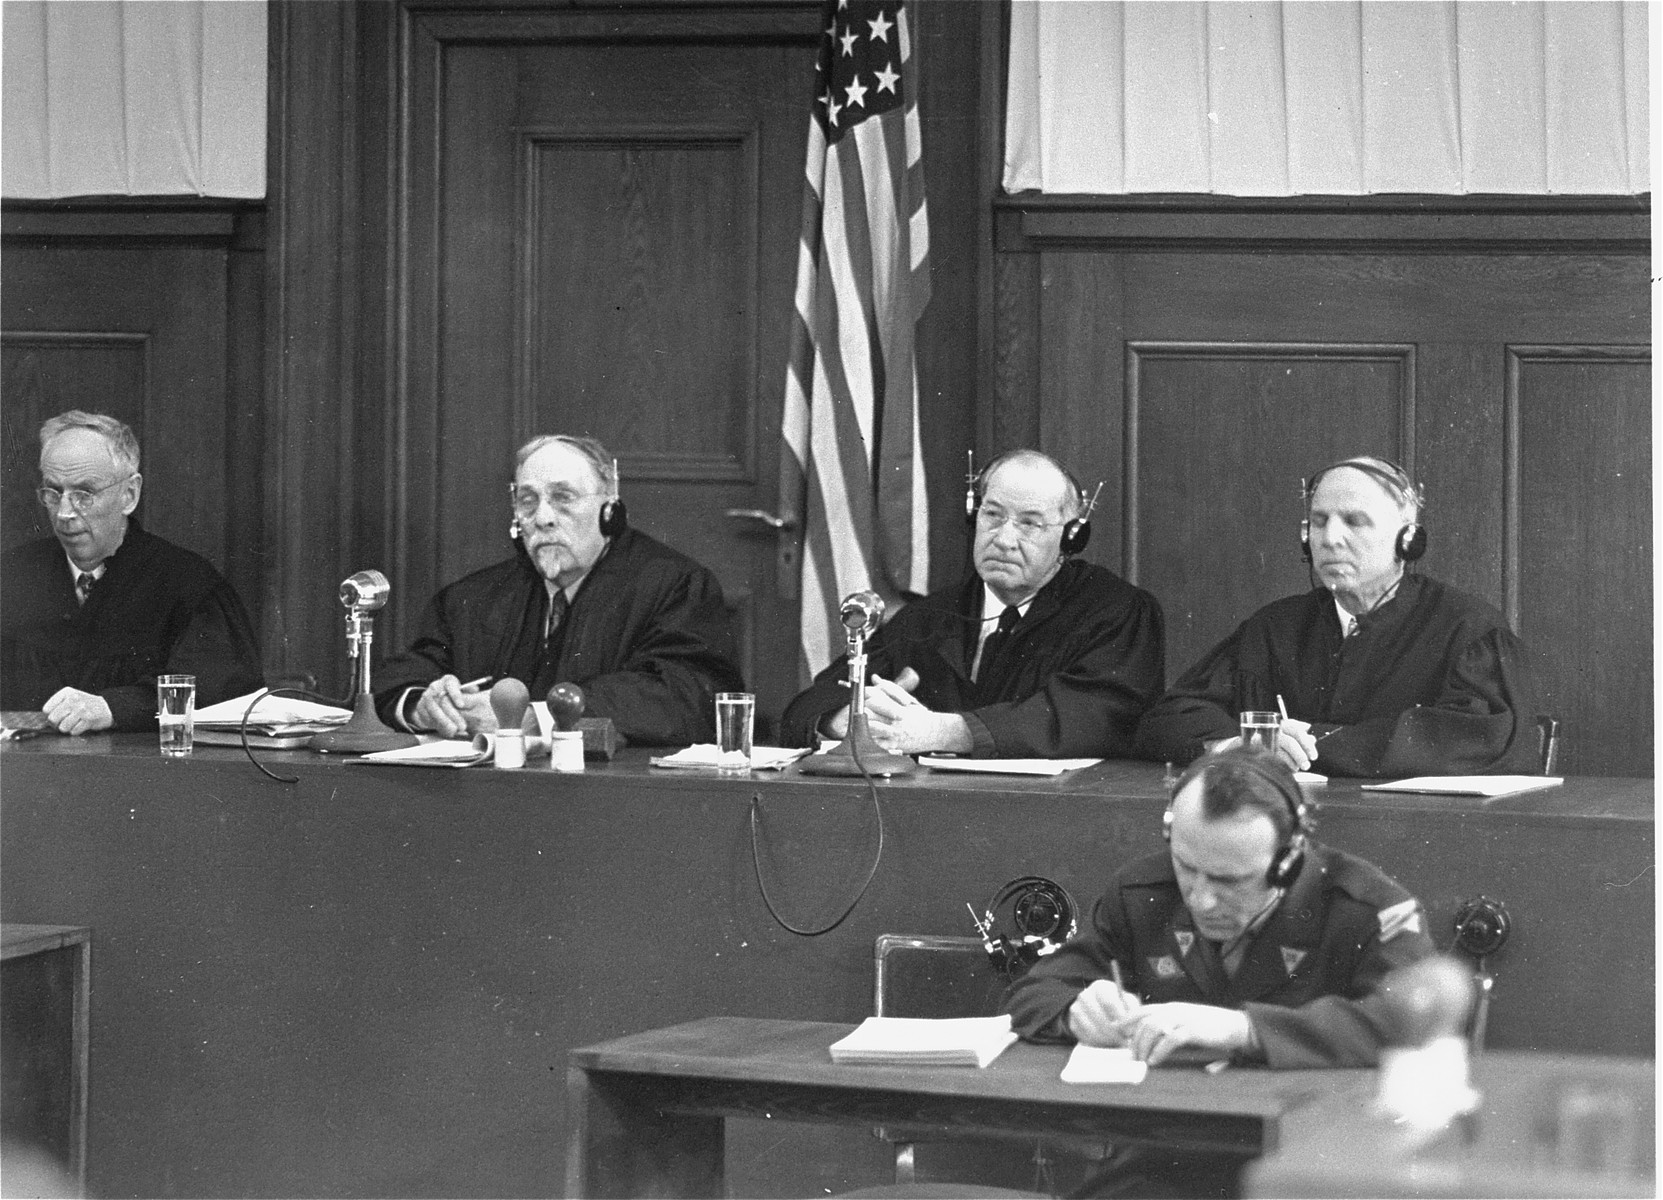 The four judges of the Military Tribunal III hearing the Justice Case.  From left to right are James T. Brand, Carrington T. Marshall, Mallory B. Blair, and Justin W. Harding.